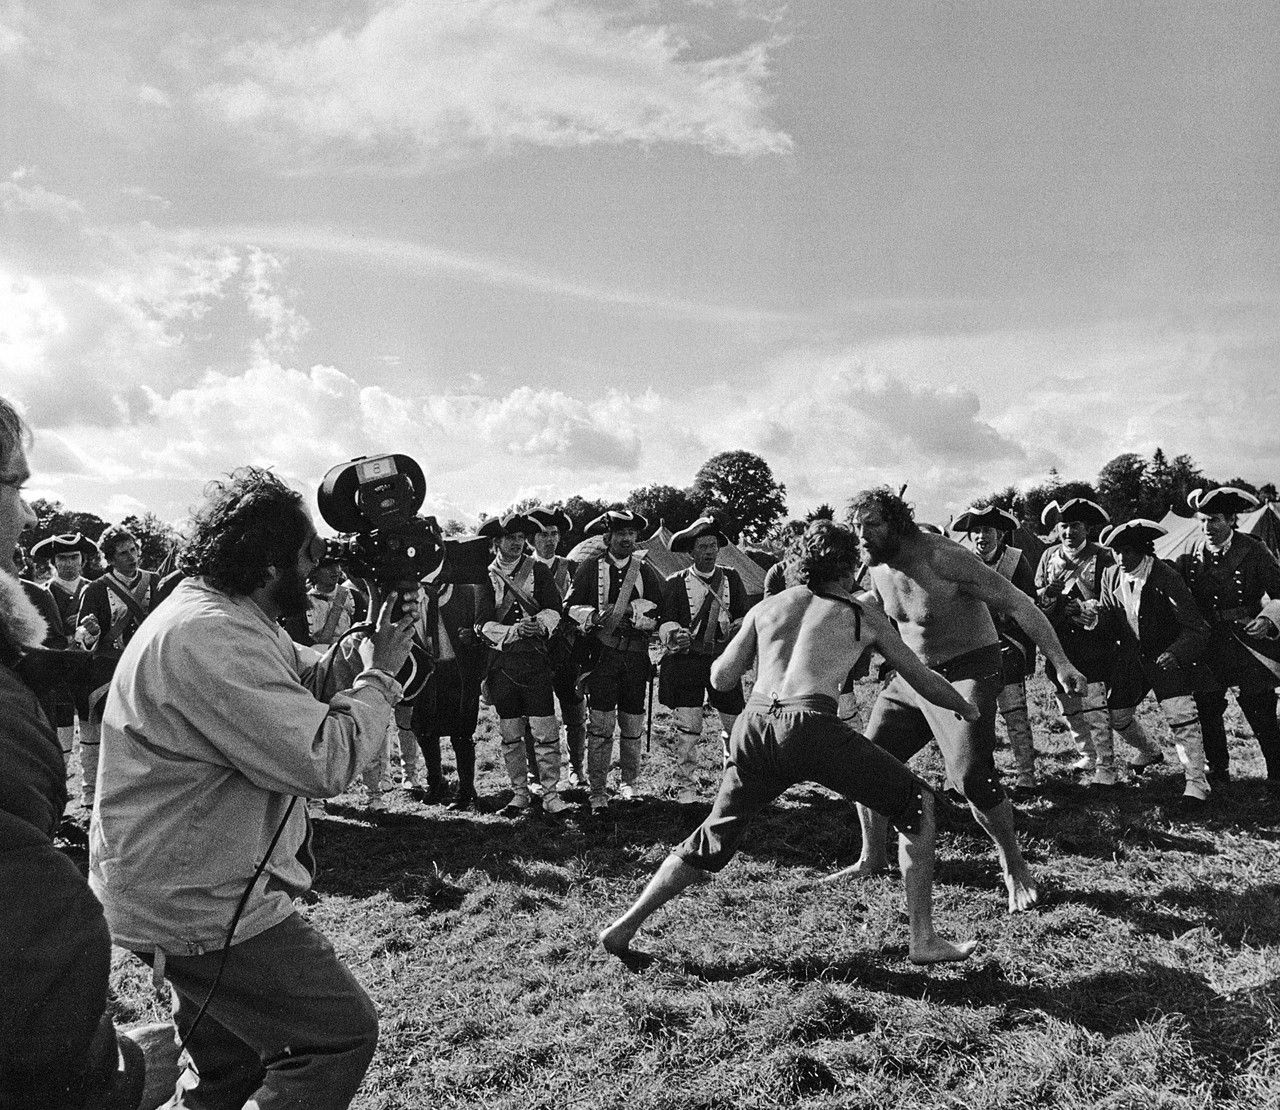 Stanley #Kubrick Operating A Camera And Shooting A Fight